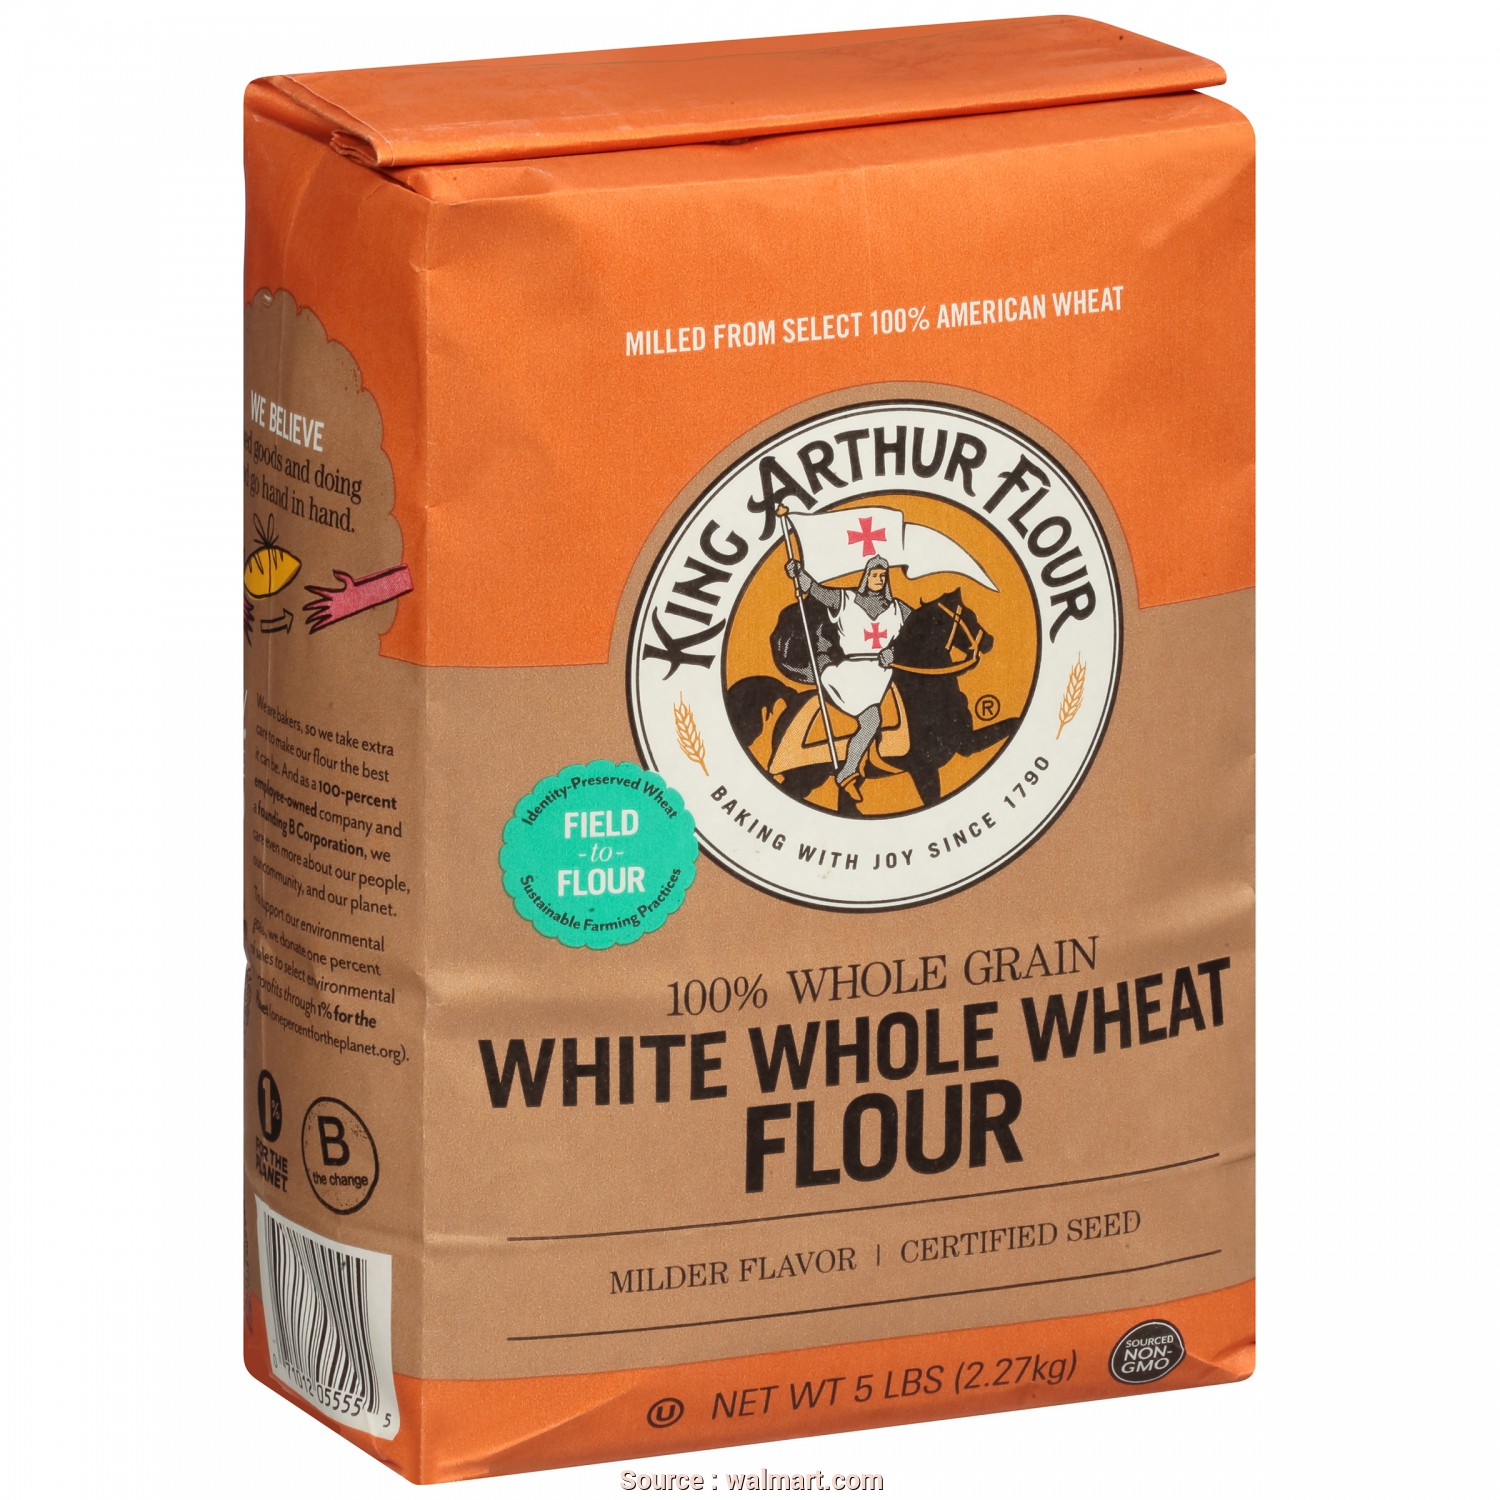 B Divani Flour, Eccezionale Great Value All-Purpose Flour, 32 Oz